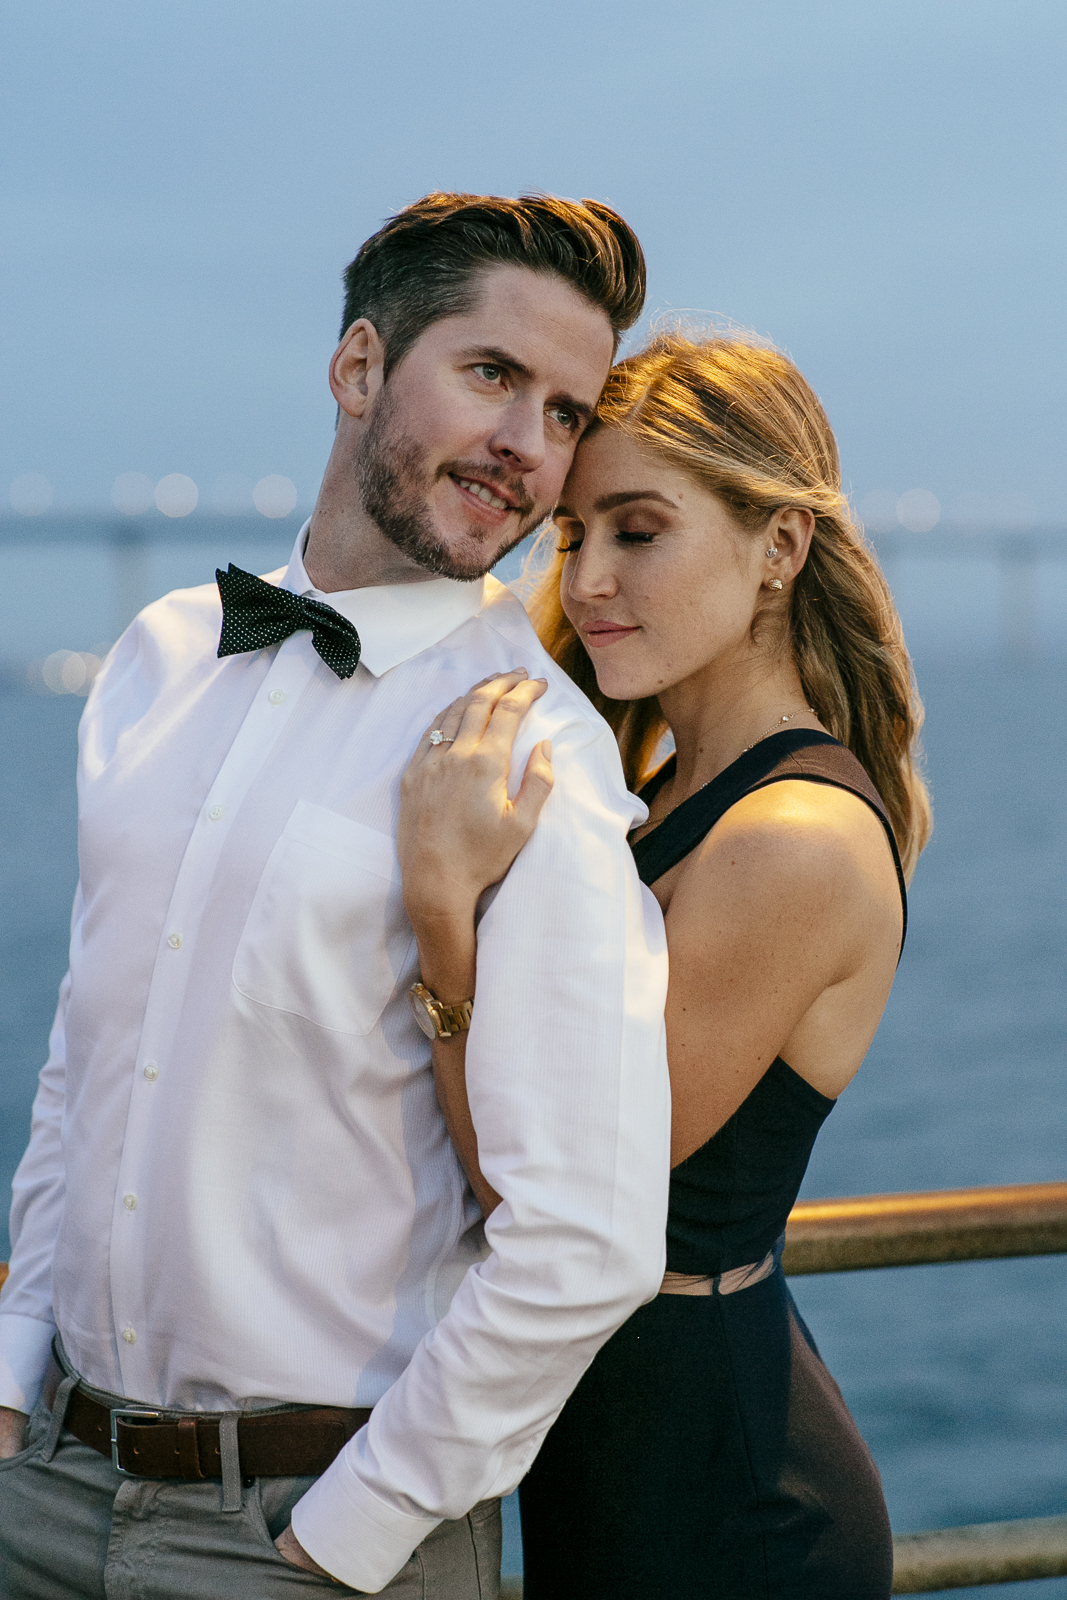 HALEY_&_MICHAEL_ENGAGEMENT_EMBARCADERO_March 03, 2016_IMG_9746.JPG